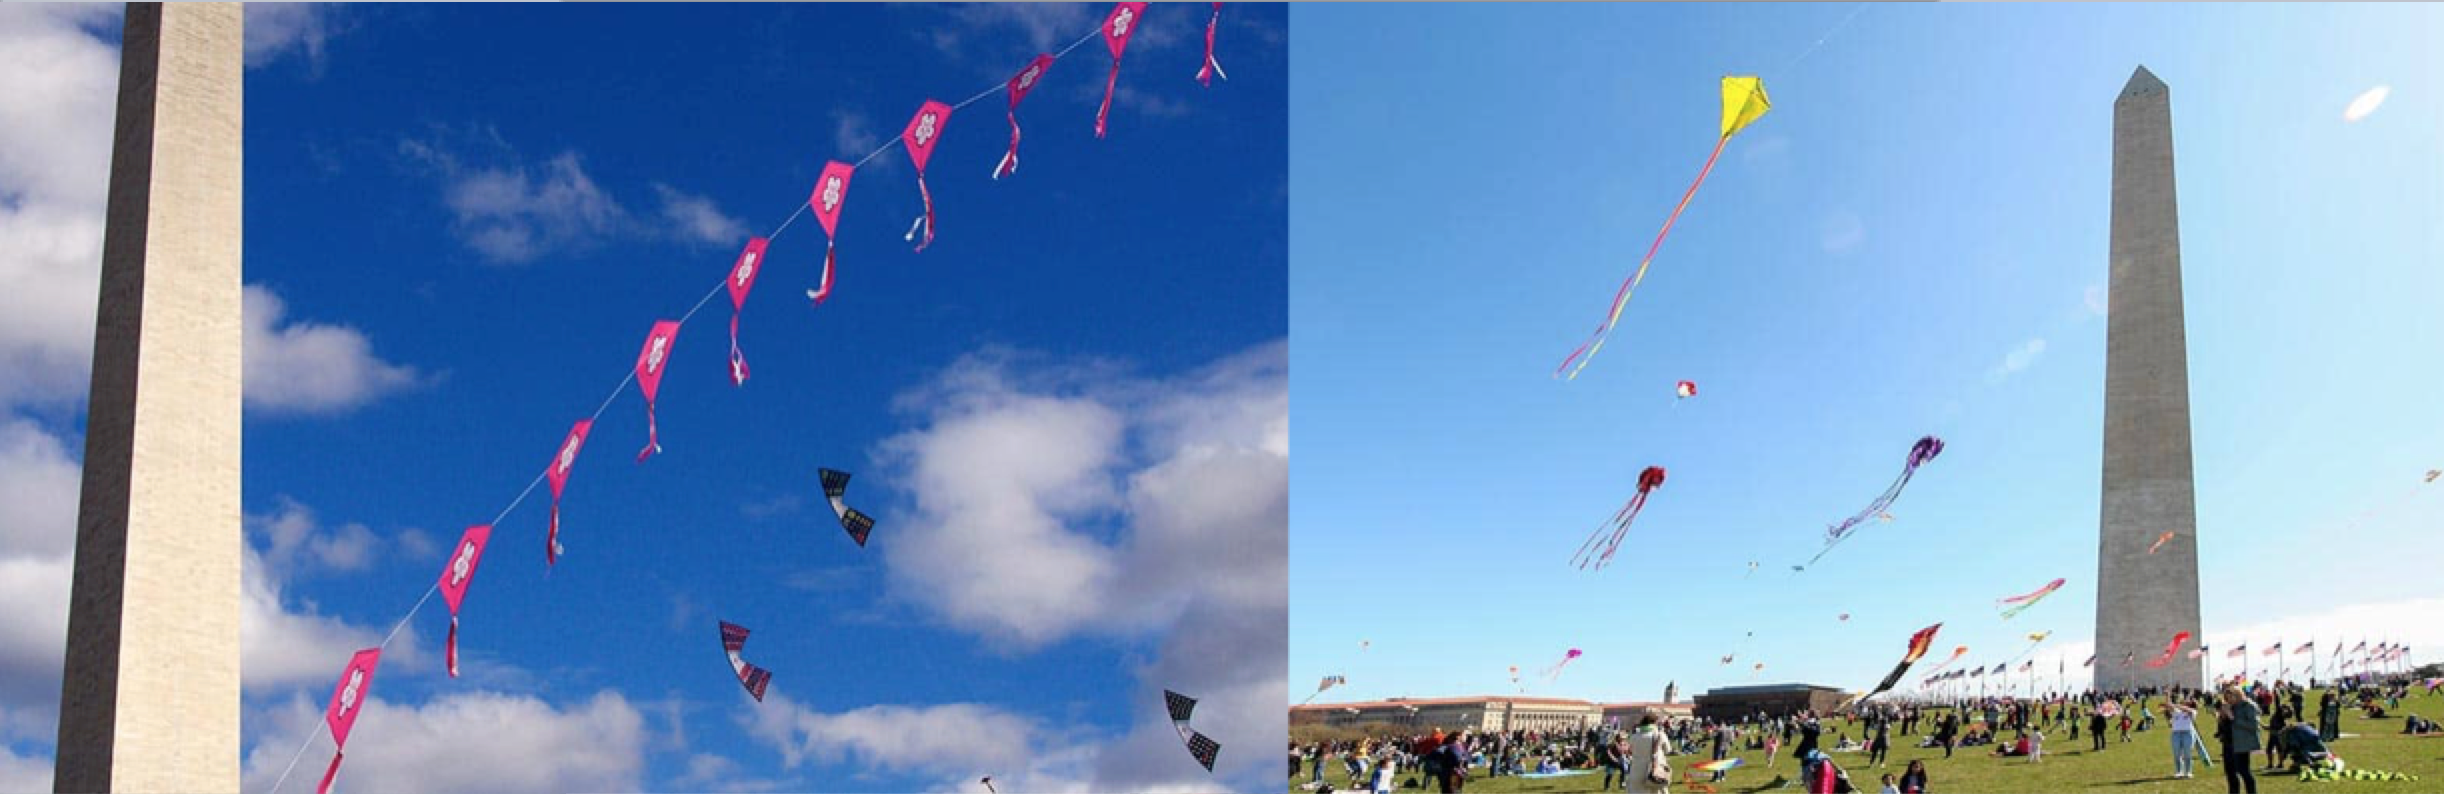 Cherry Blossom Kite Festival in Washington, D.C.